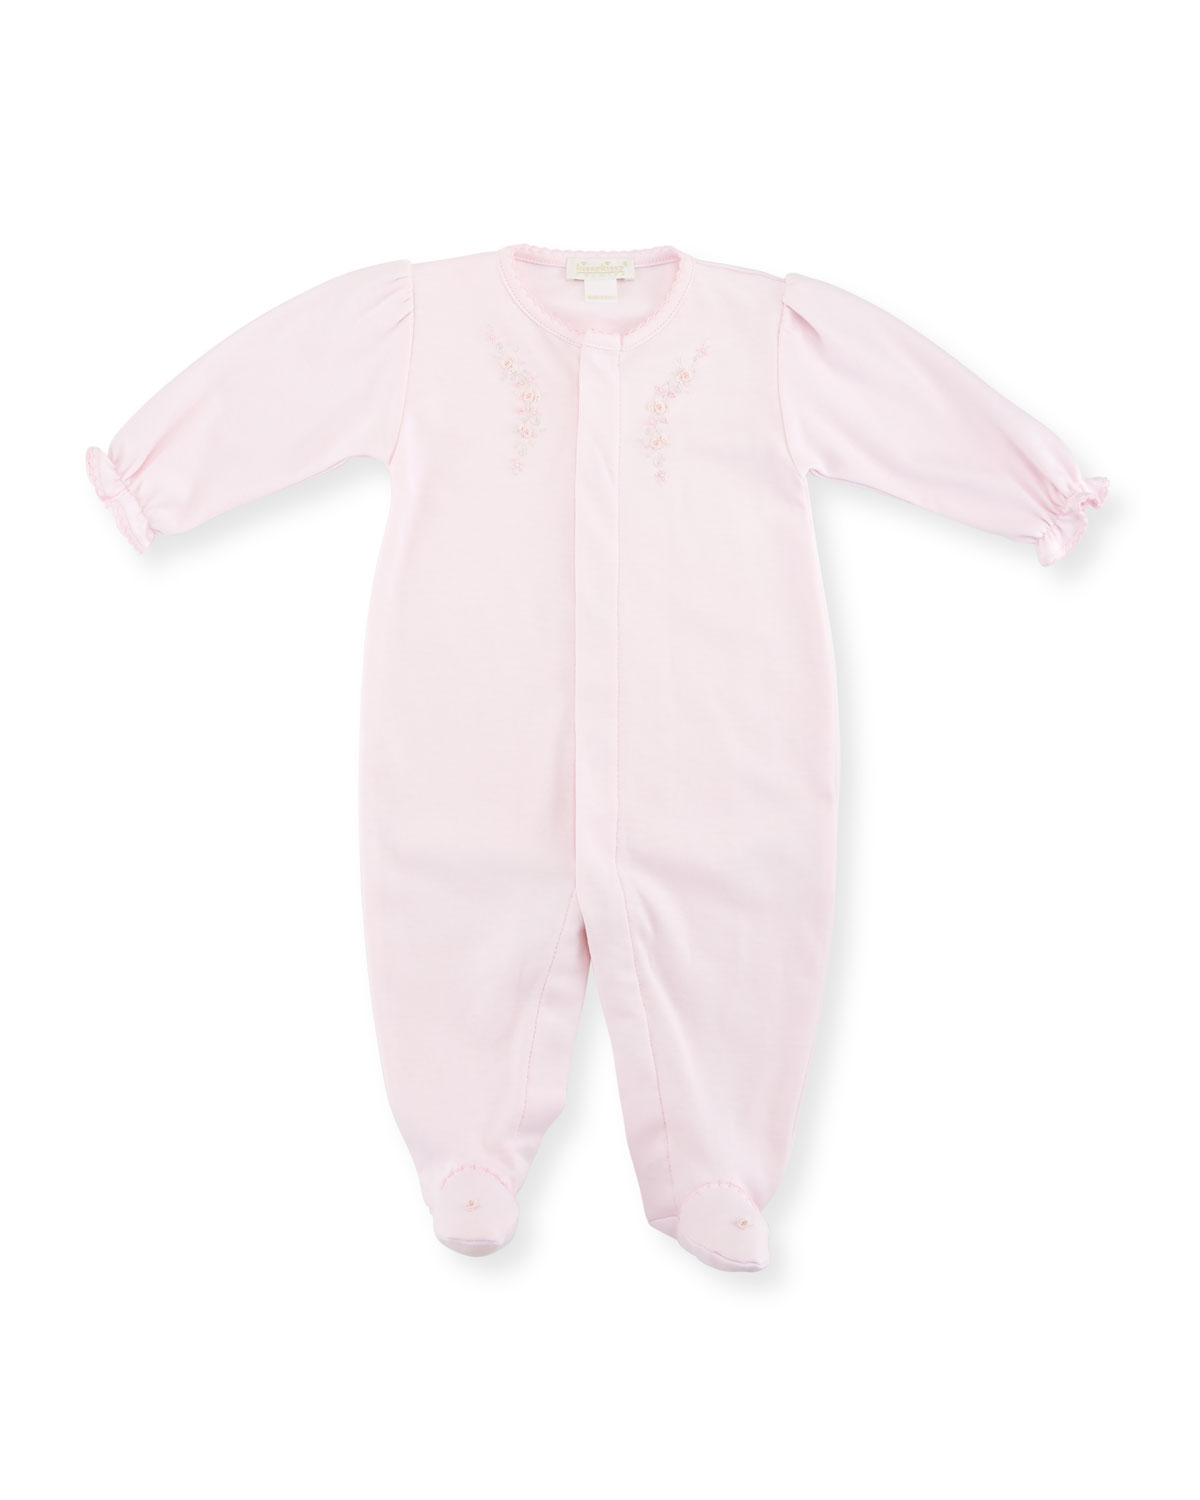 Fall Vines Pima Footie Pajamas, Pink, Size 0-9 Months